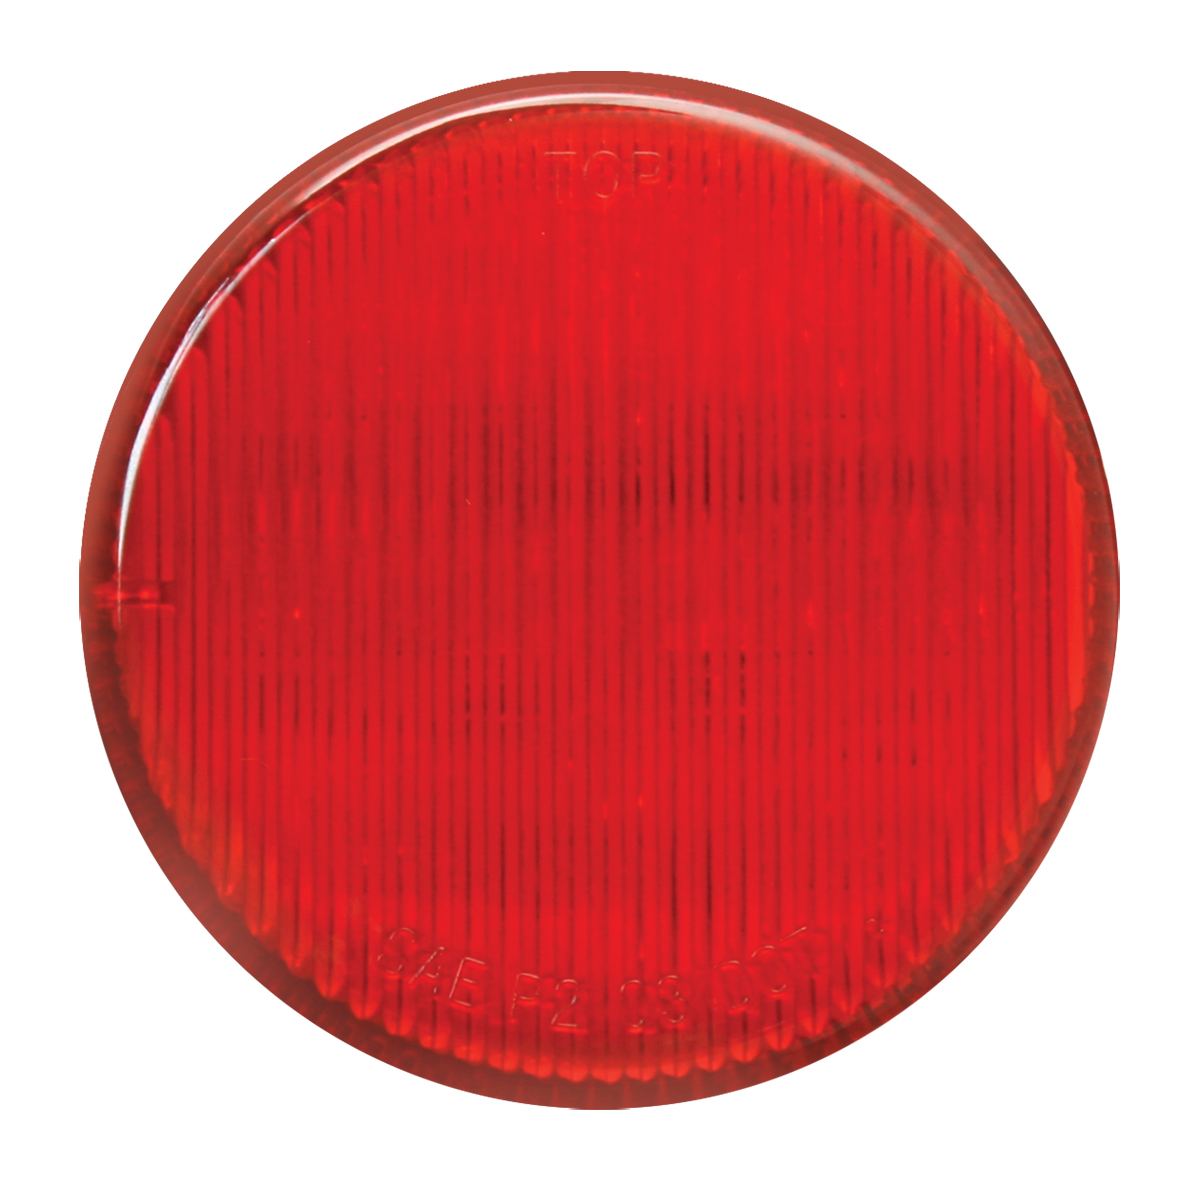 "75121 24V 2-1/2"" Round Fleet Marker Light"